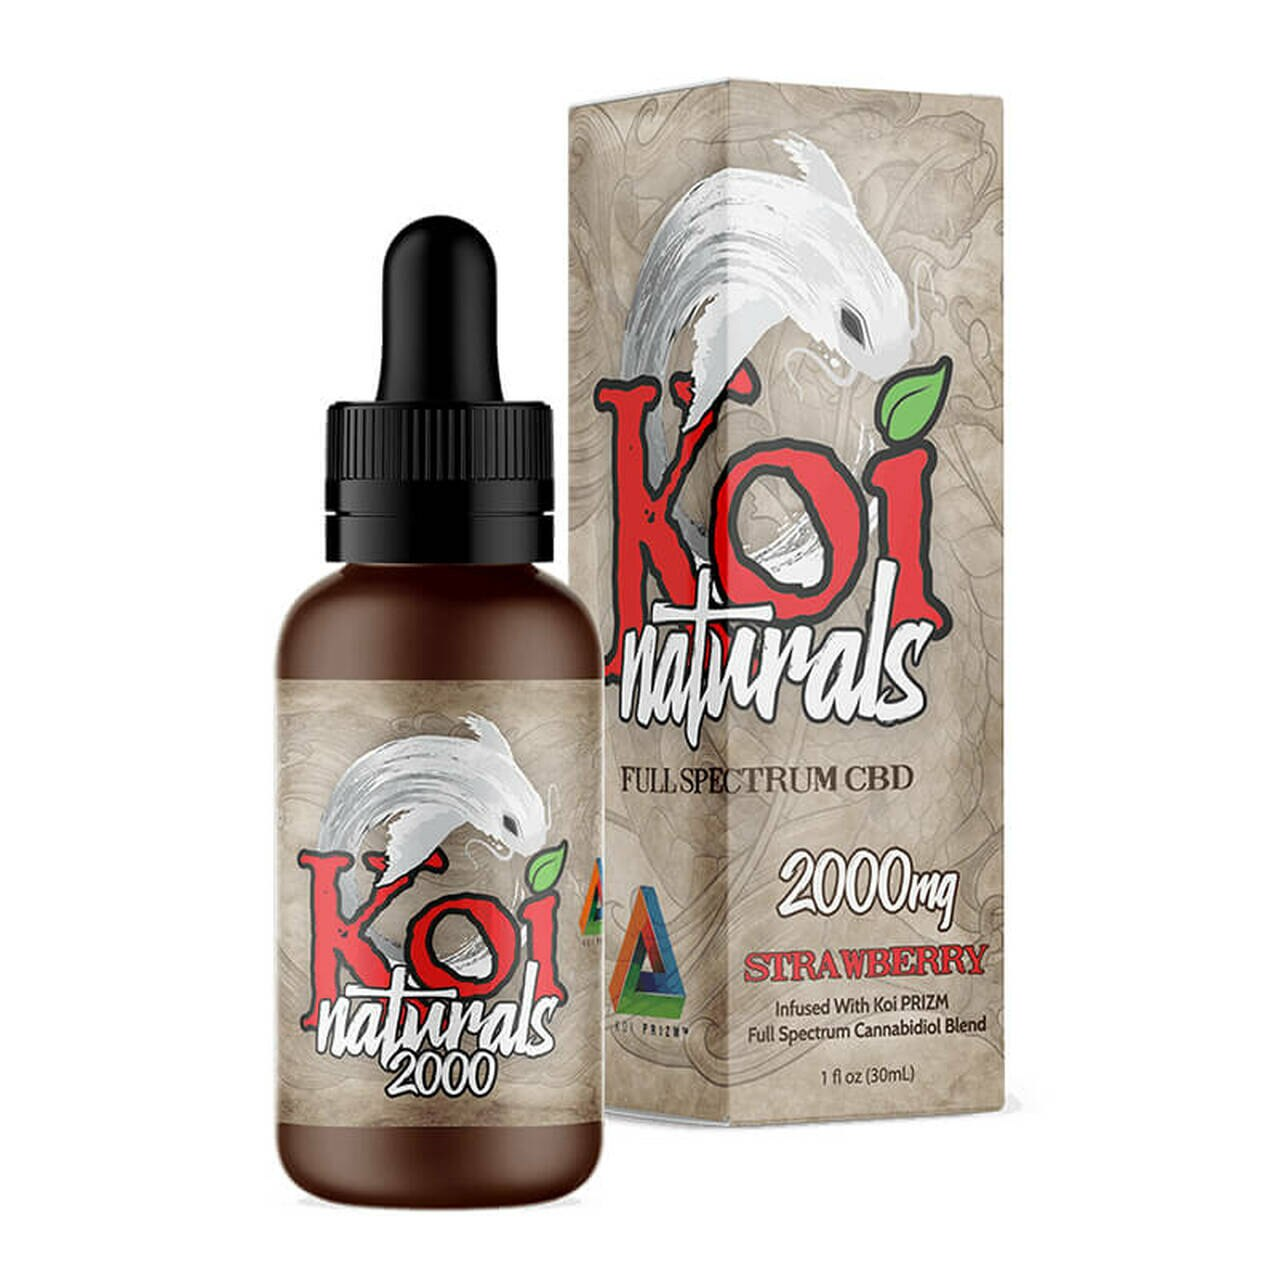 KOI CBD Naturals Strawberry CBD Tincture